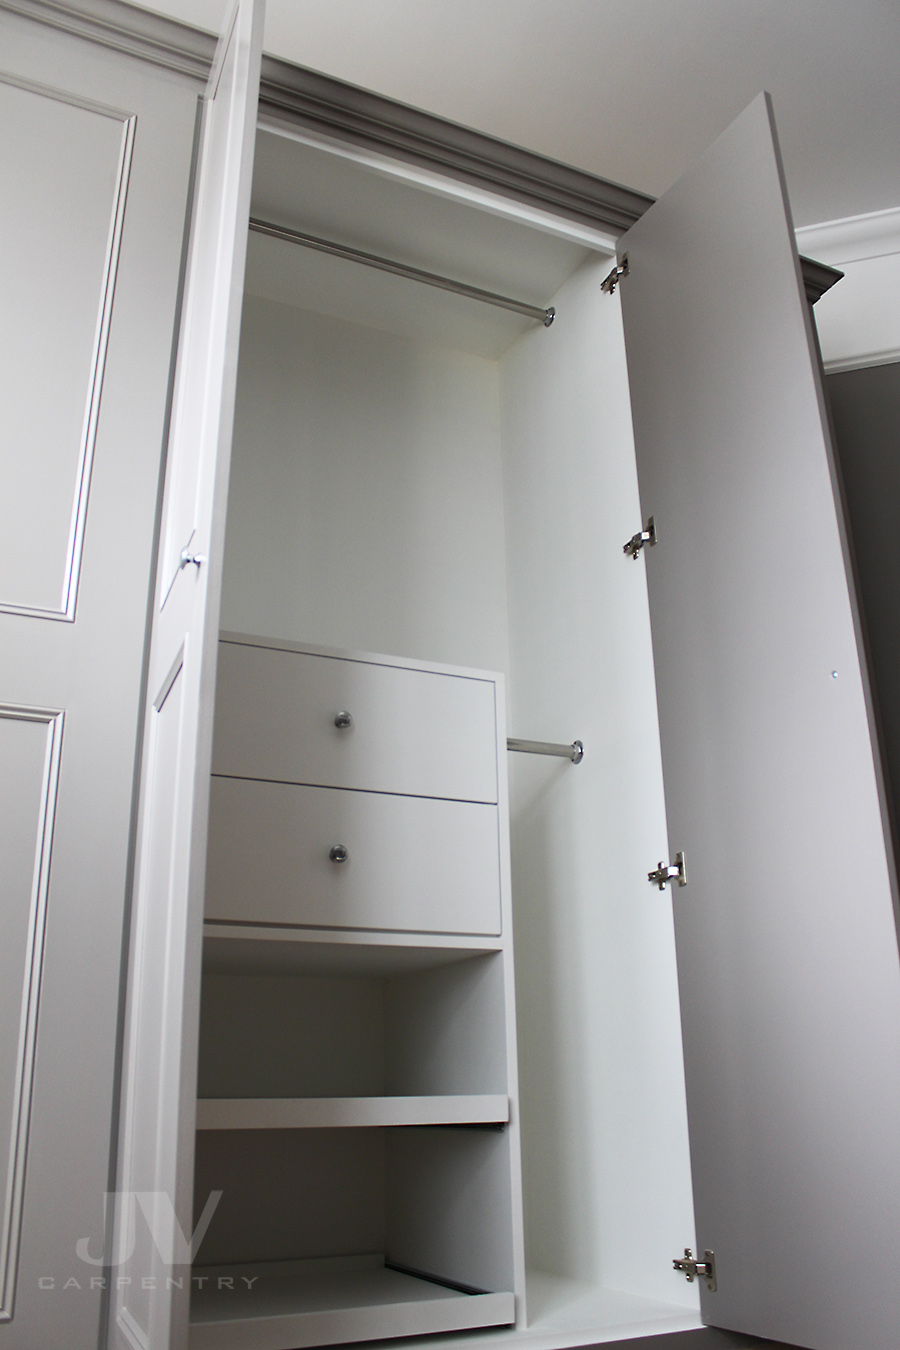 Bedroom wardrobe with drawers and shoe racks inside